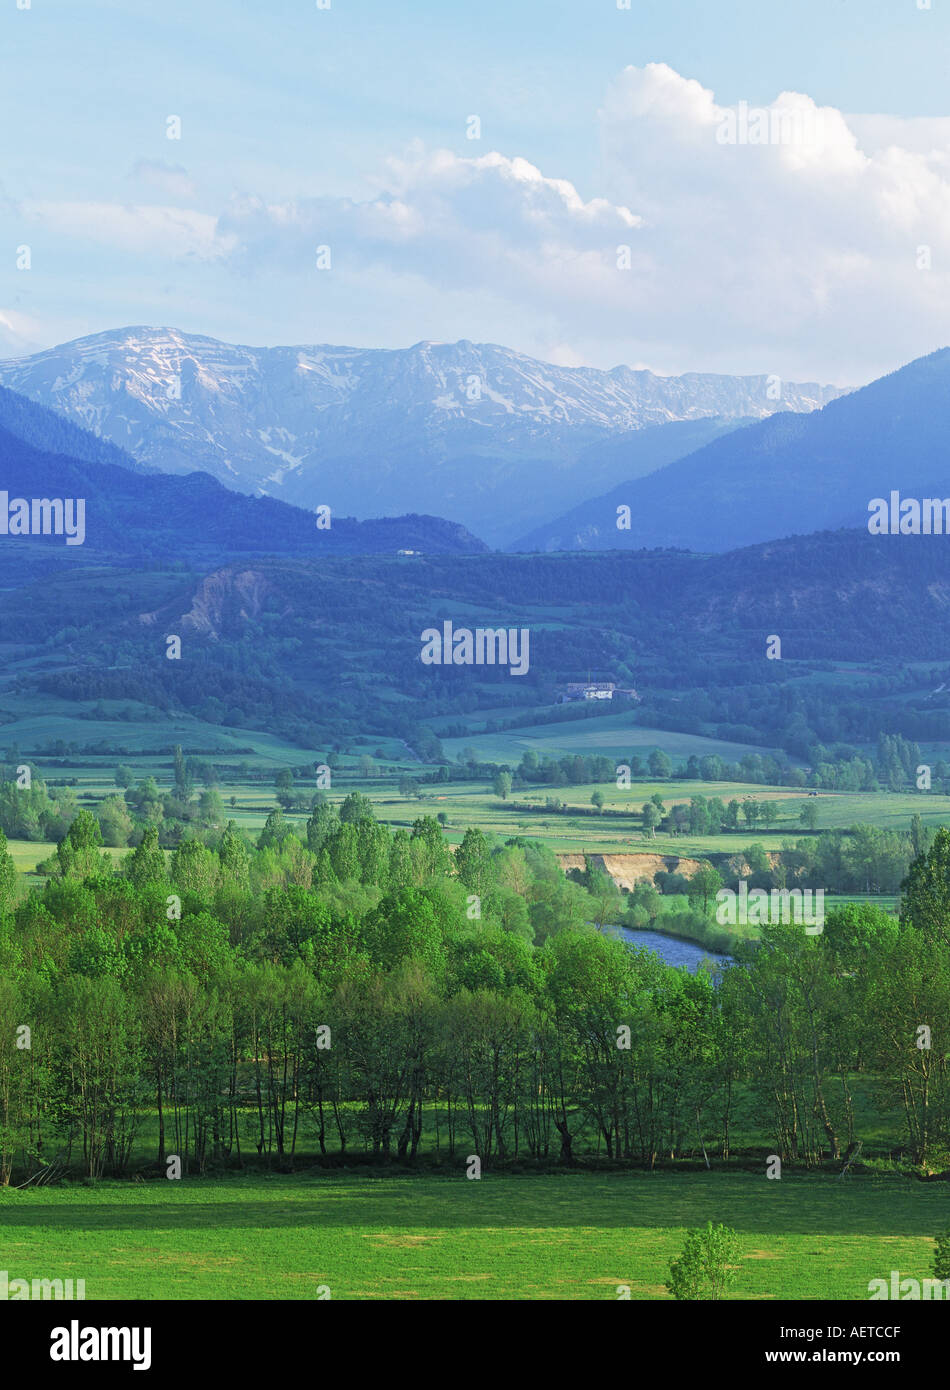 Farmlands and foothills below Pyrenees in Catalunya, Spain - Stock Image